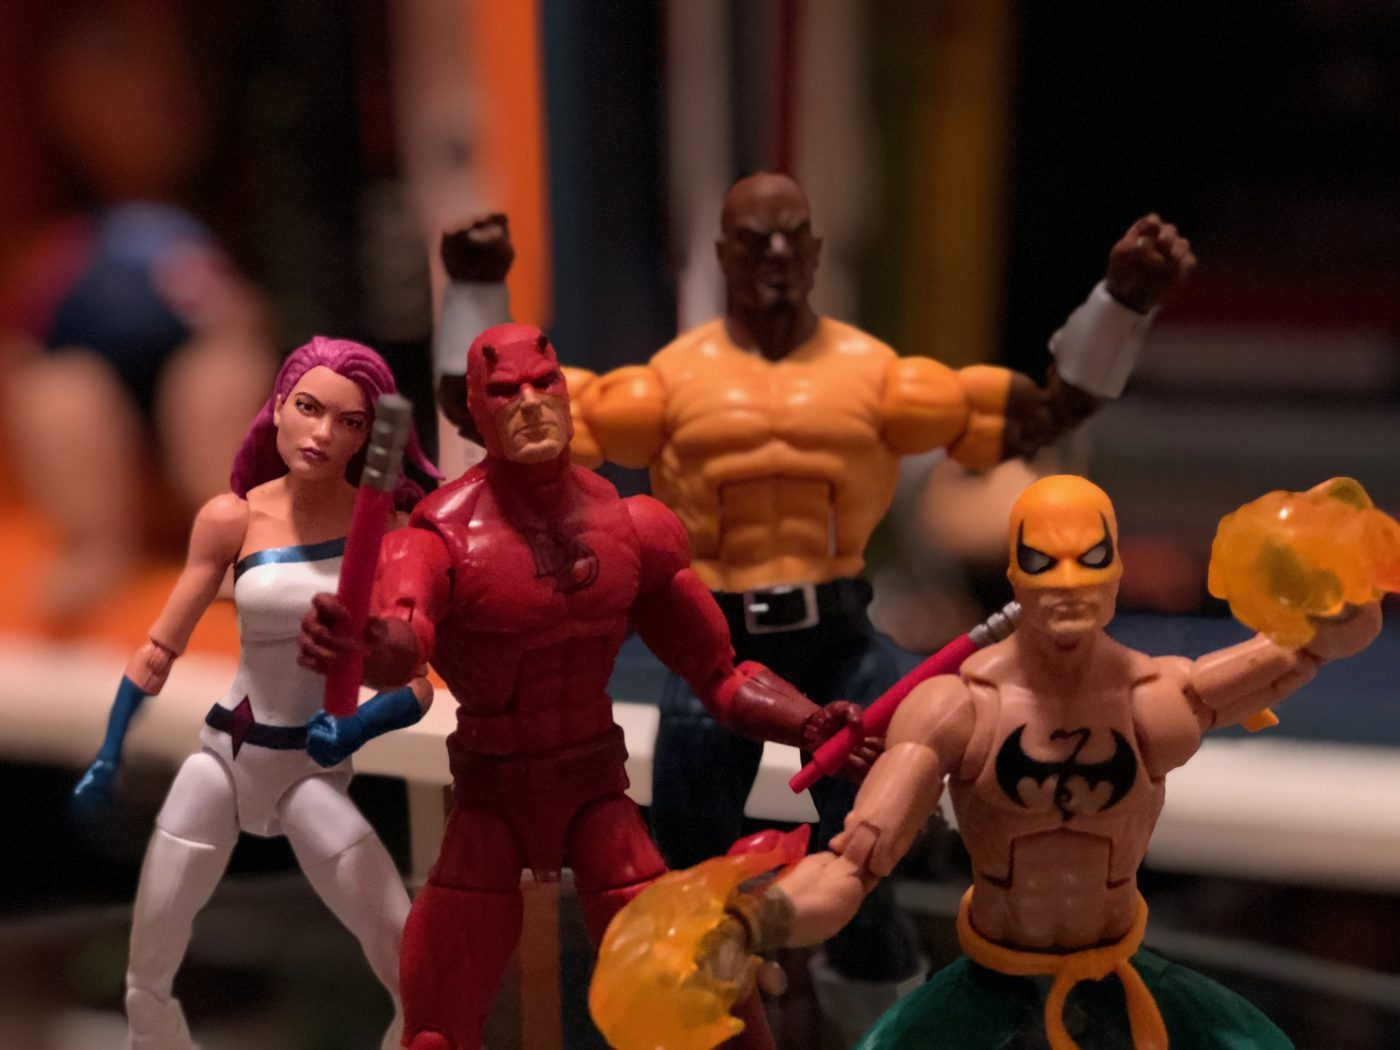 Unboxing/Review: Marvel Legends Series The Defenders Figure 4-pack